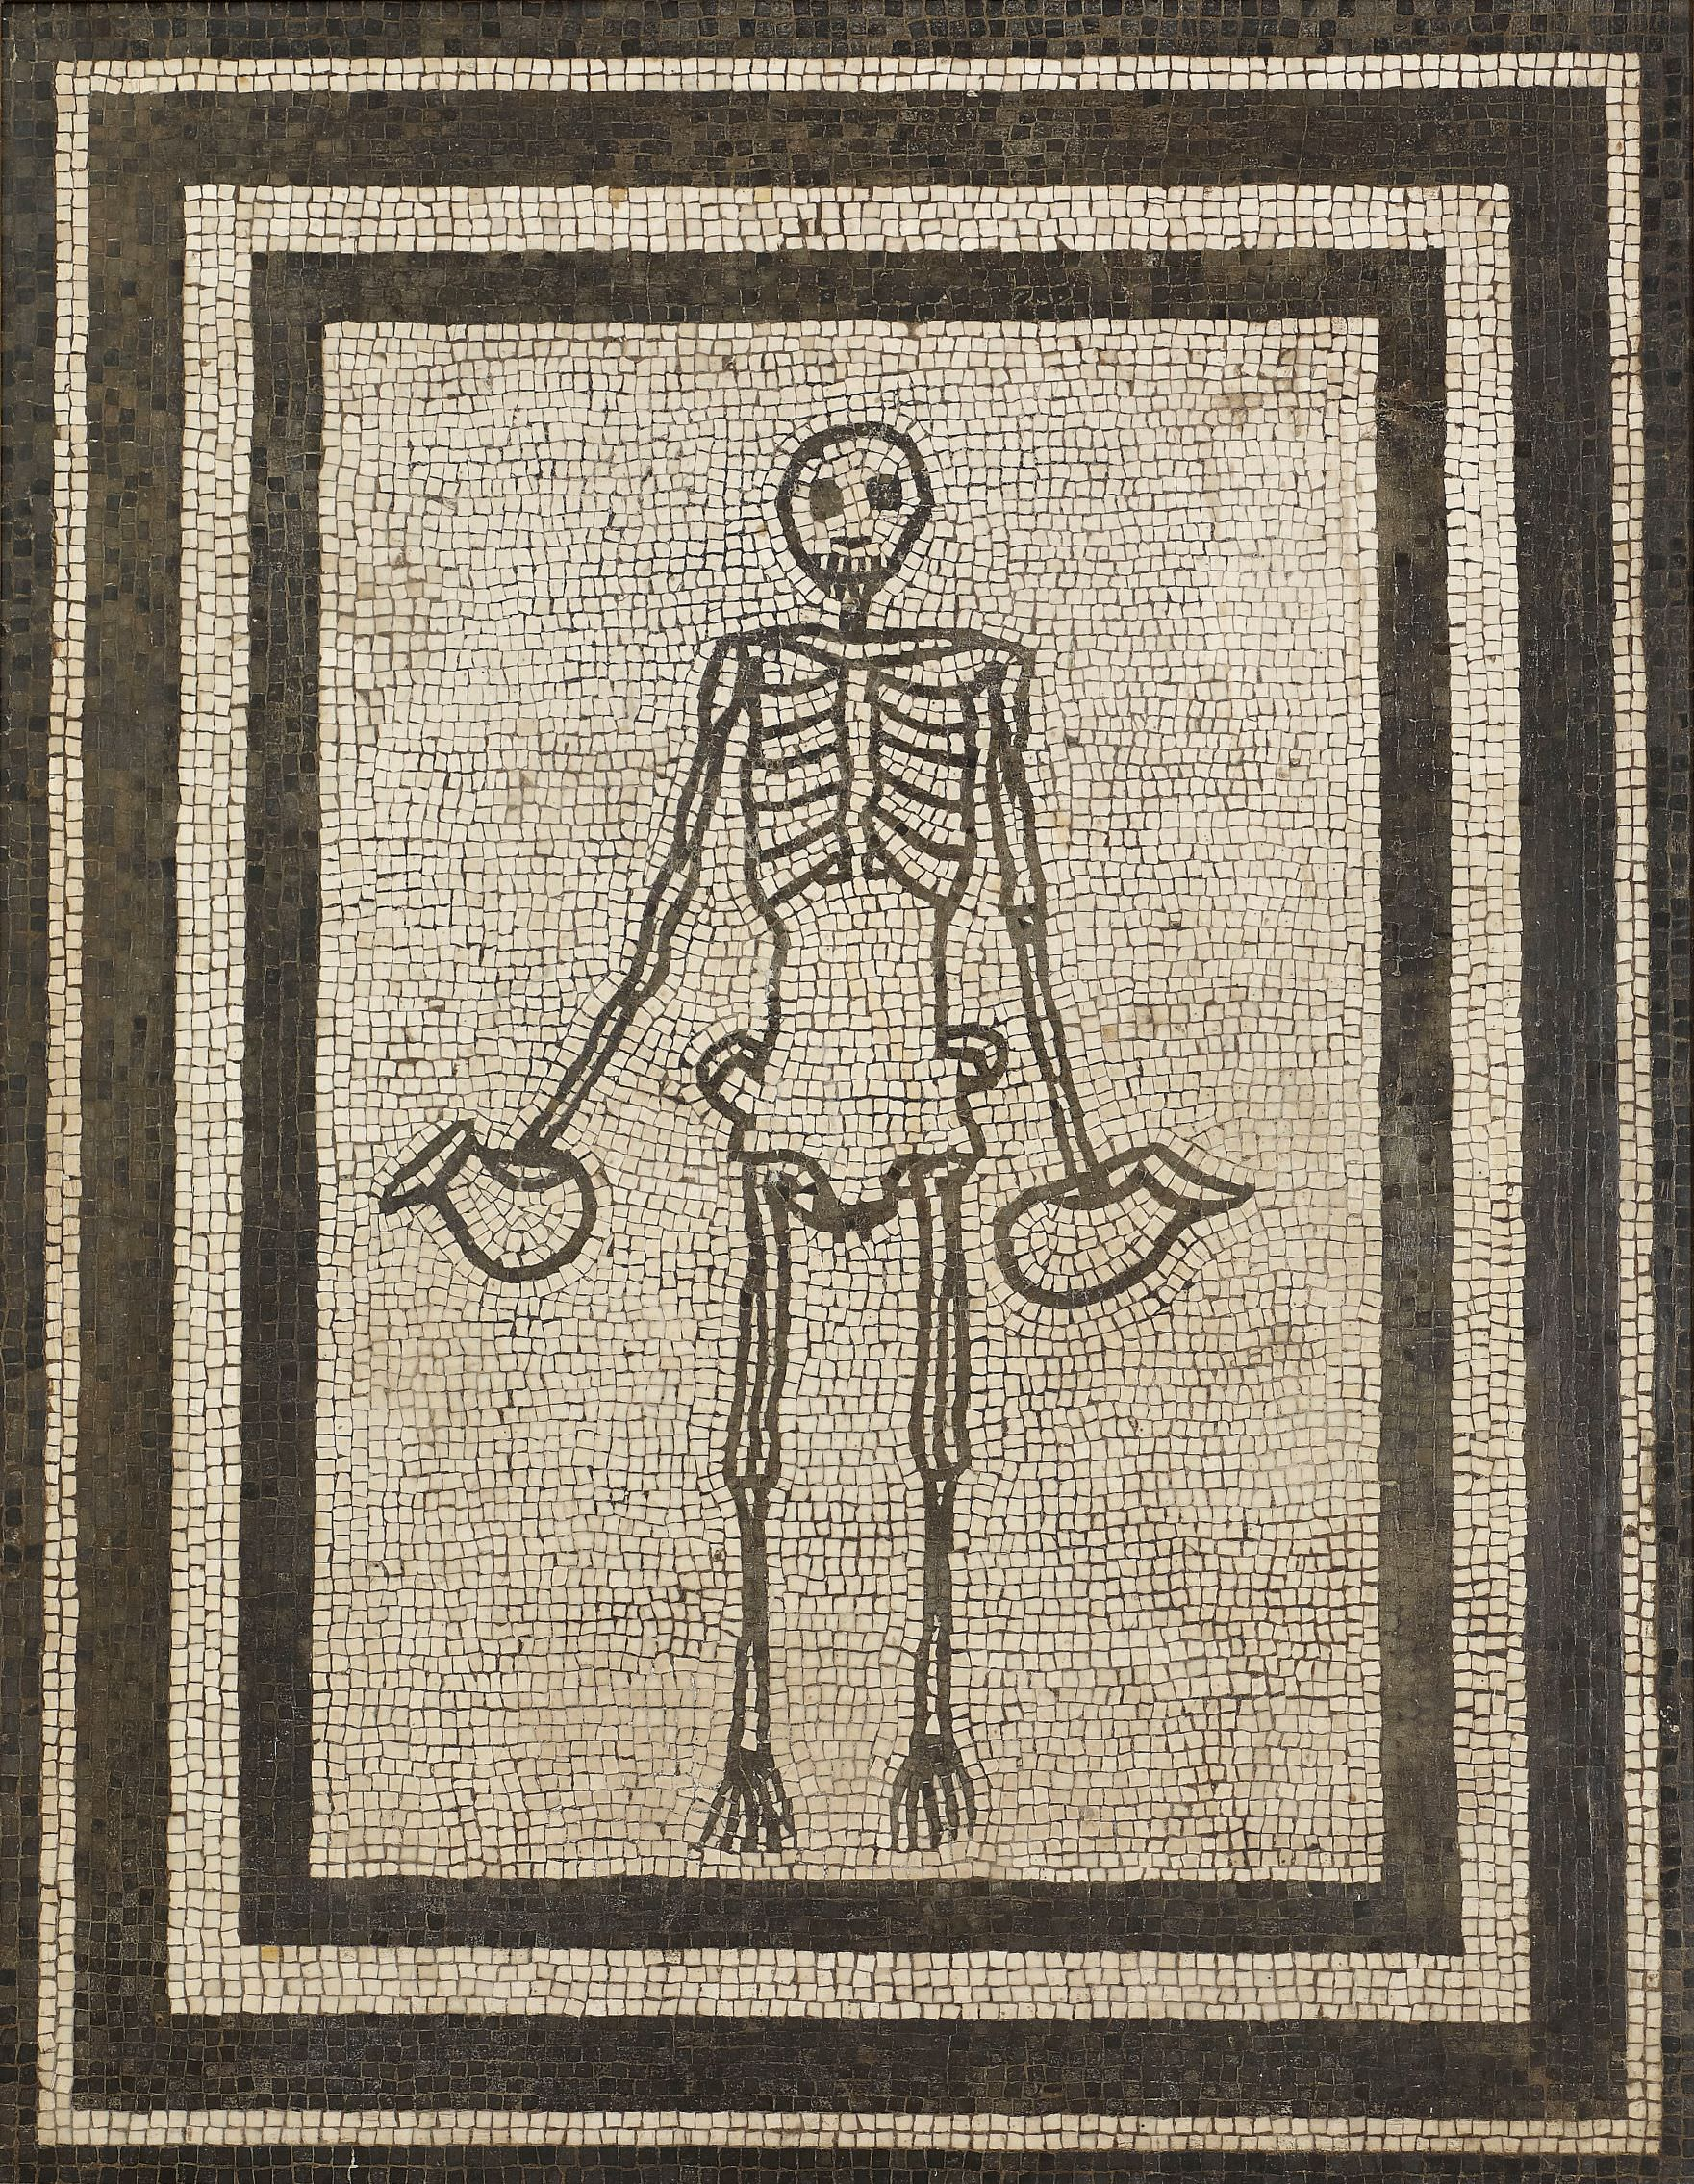 Monochrome mosaic panel of a skeleton holding two wine jugs, AD 1–50. Pompeii, House of the Vestals (91 x 70 cm). Museo Archeologico Nazionale di Napoli